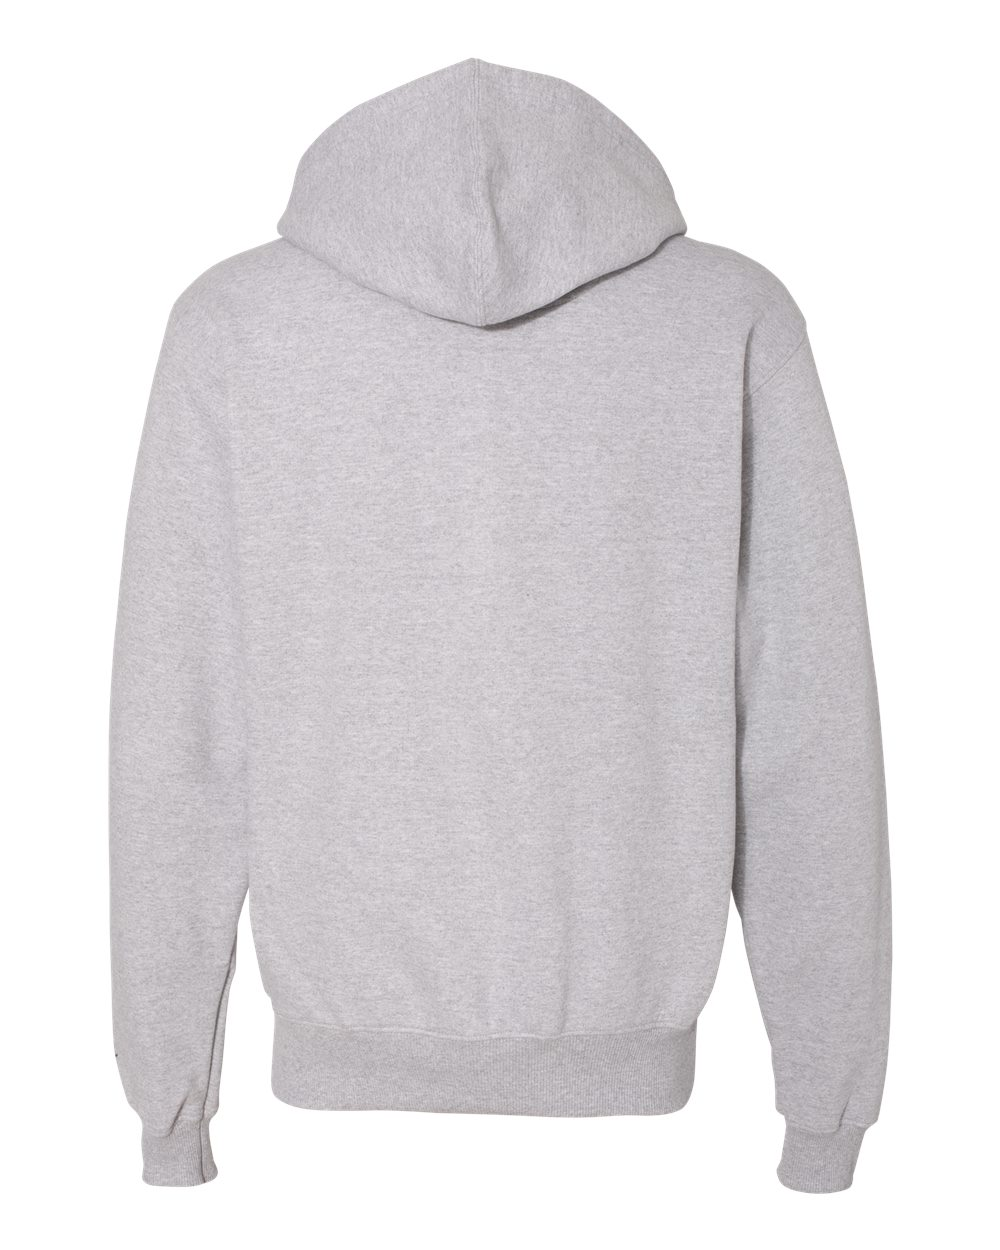 Champion-Mens-Cotton-Max-Hooded-Quarter-Zip-Sweatshirt-Pullover-S185-up-to-3XL miniature 13